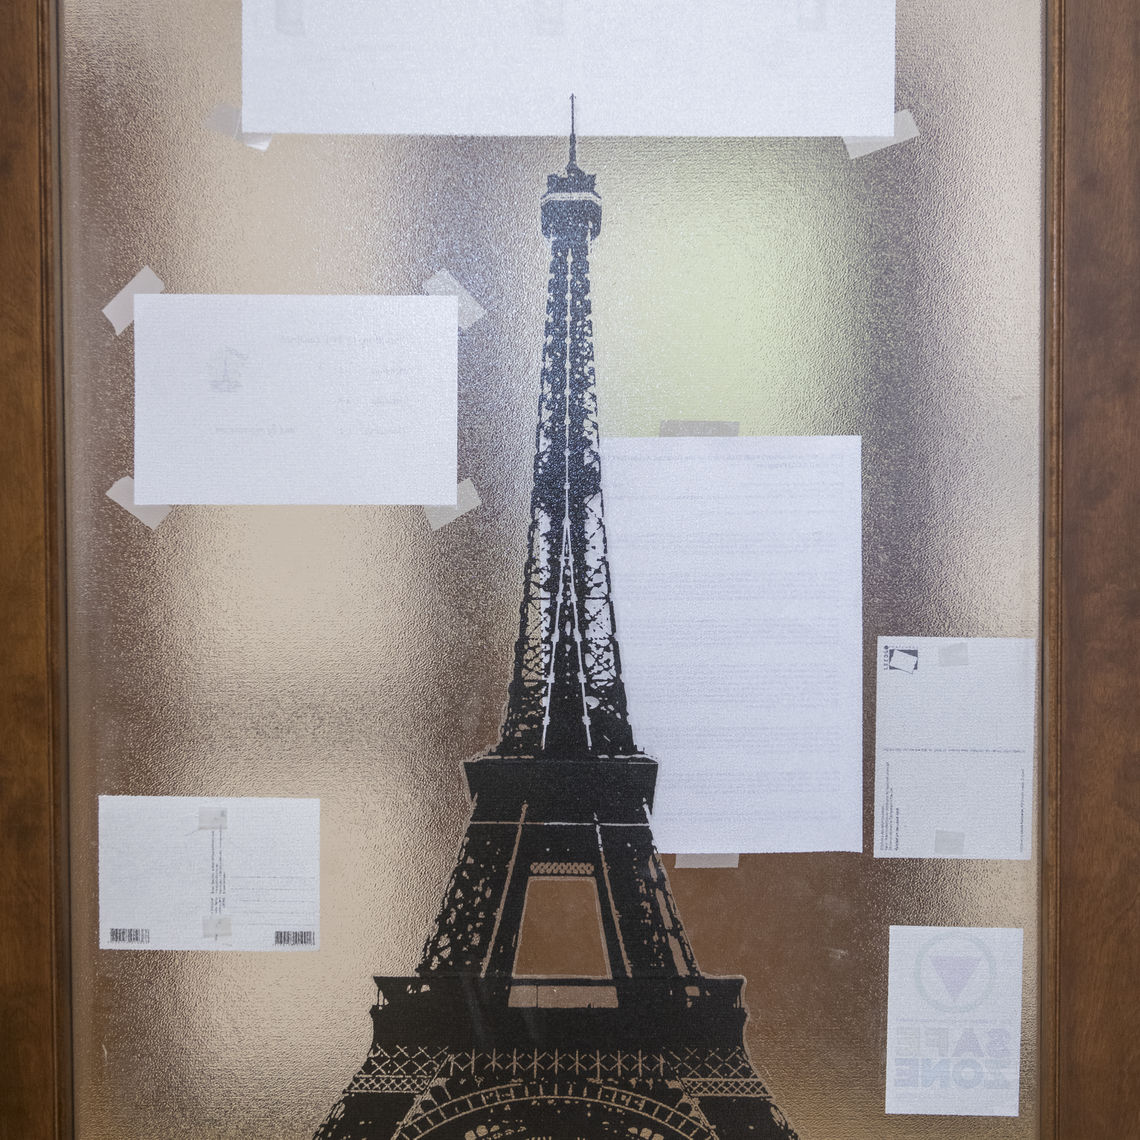 Carrie Landfried, associate professor of French, has many reminders of the famed Eiffel Tower in her office — including desk lamps, pictures and small replicas.